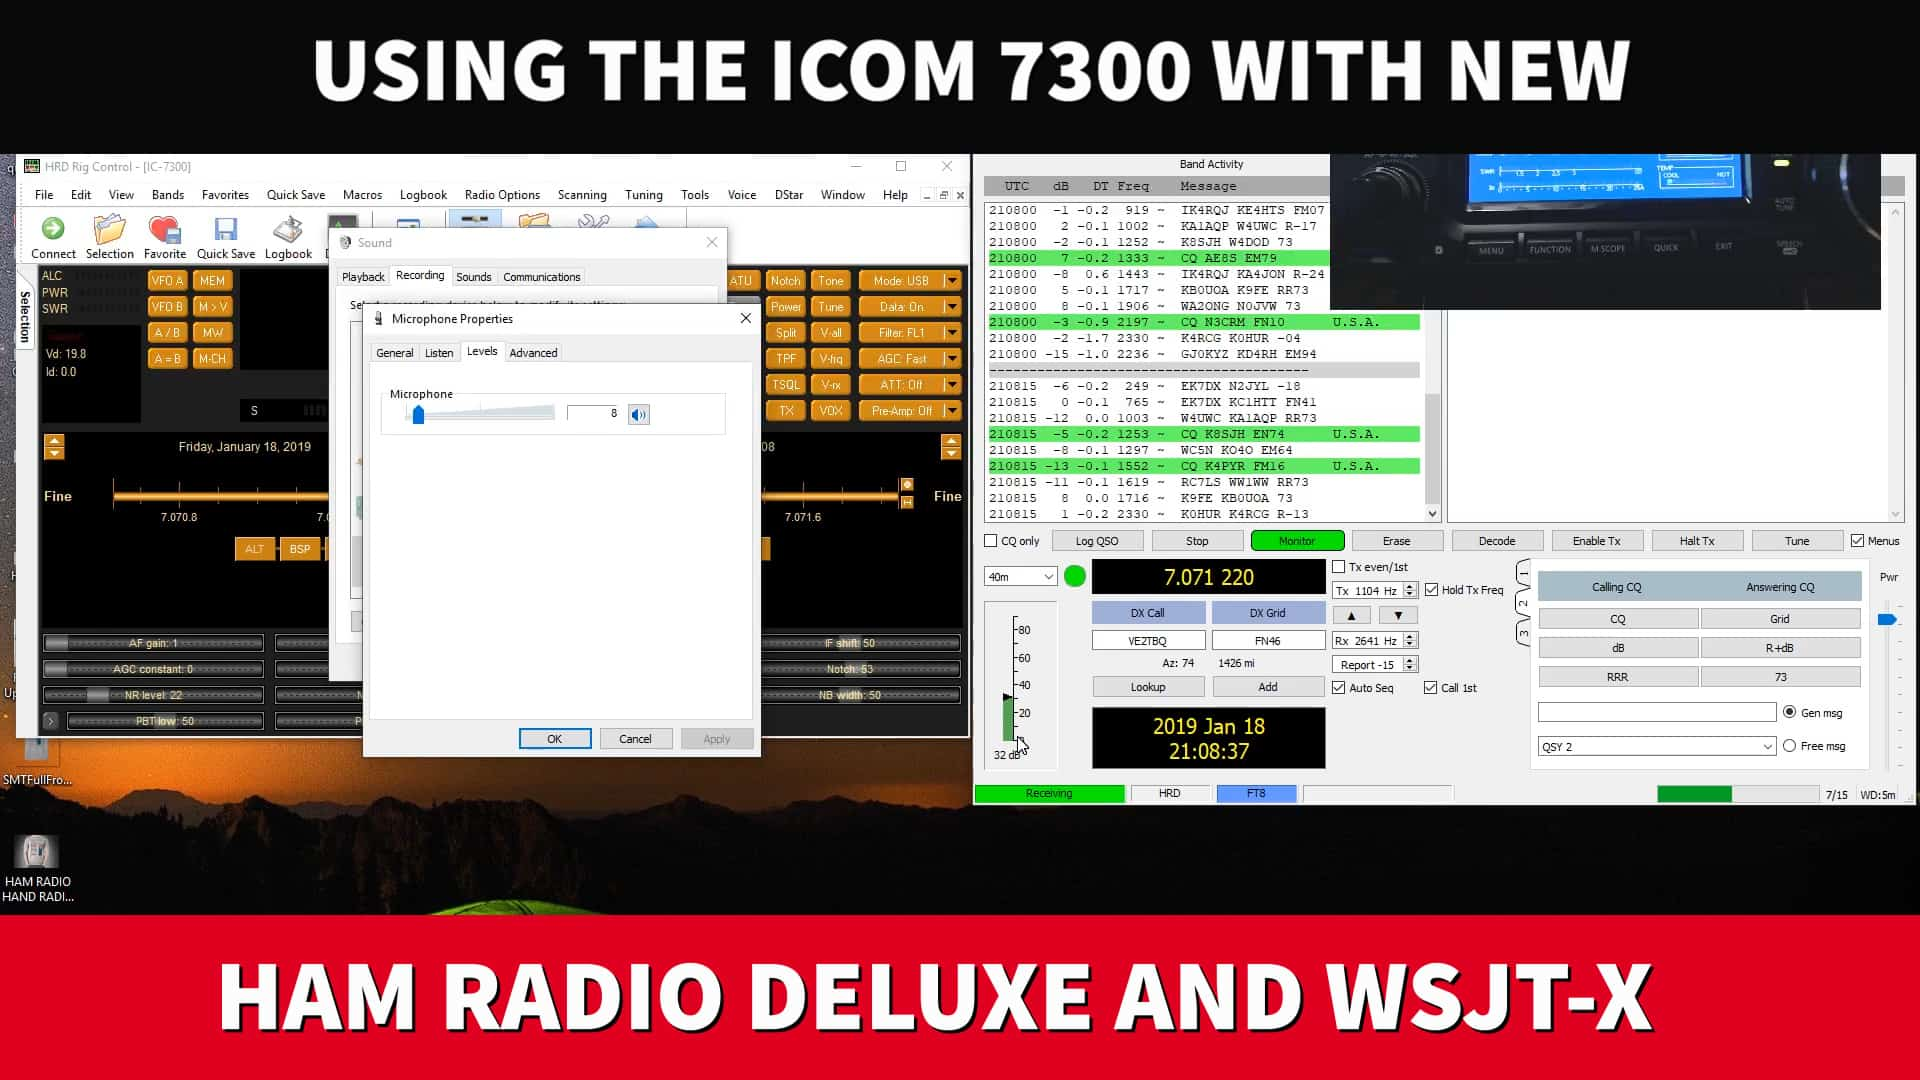 Using the Icom 7300 with NEW Ham Radio Deluxe and WSJT-X - Ham Radio